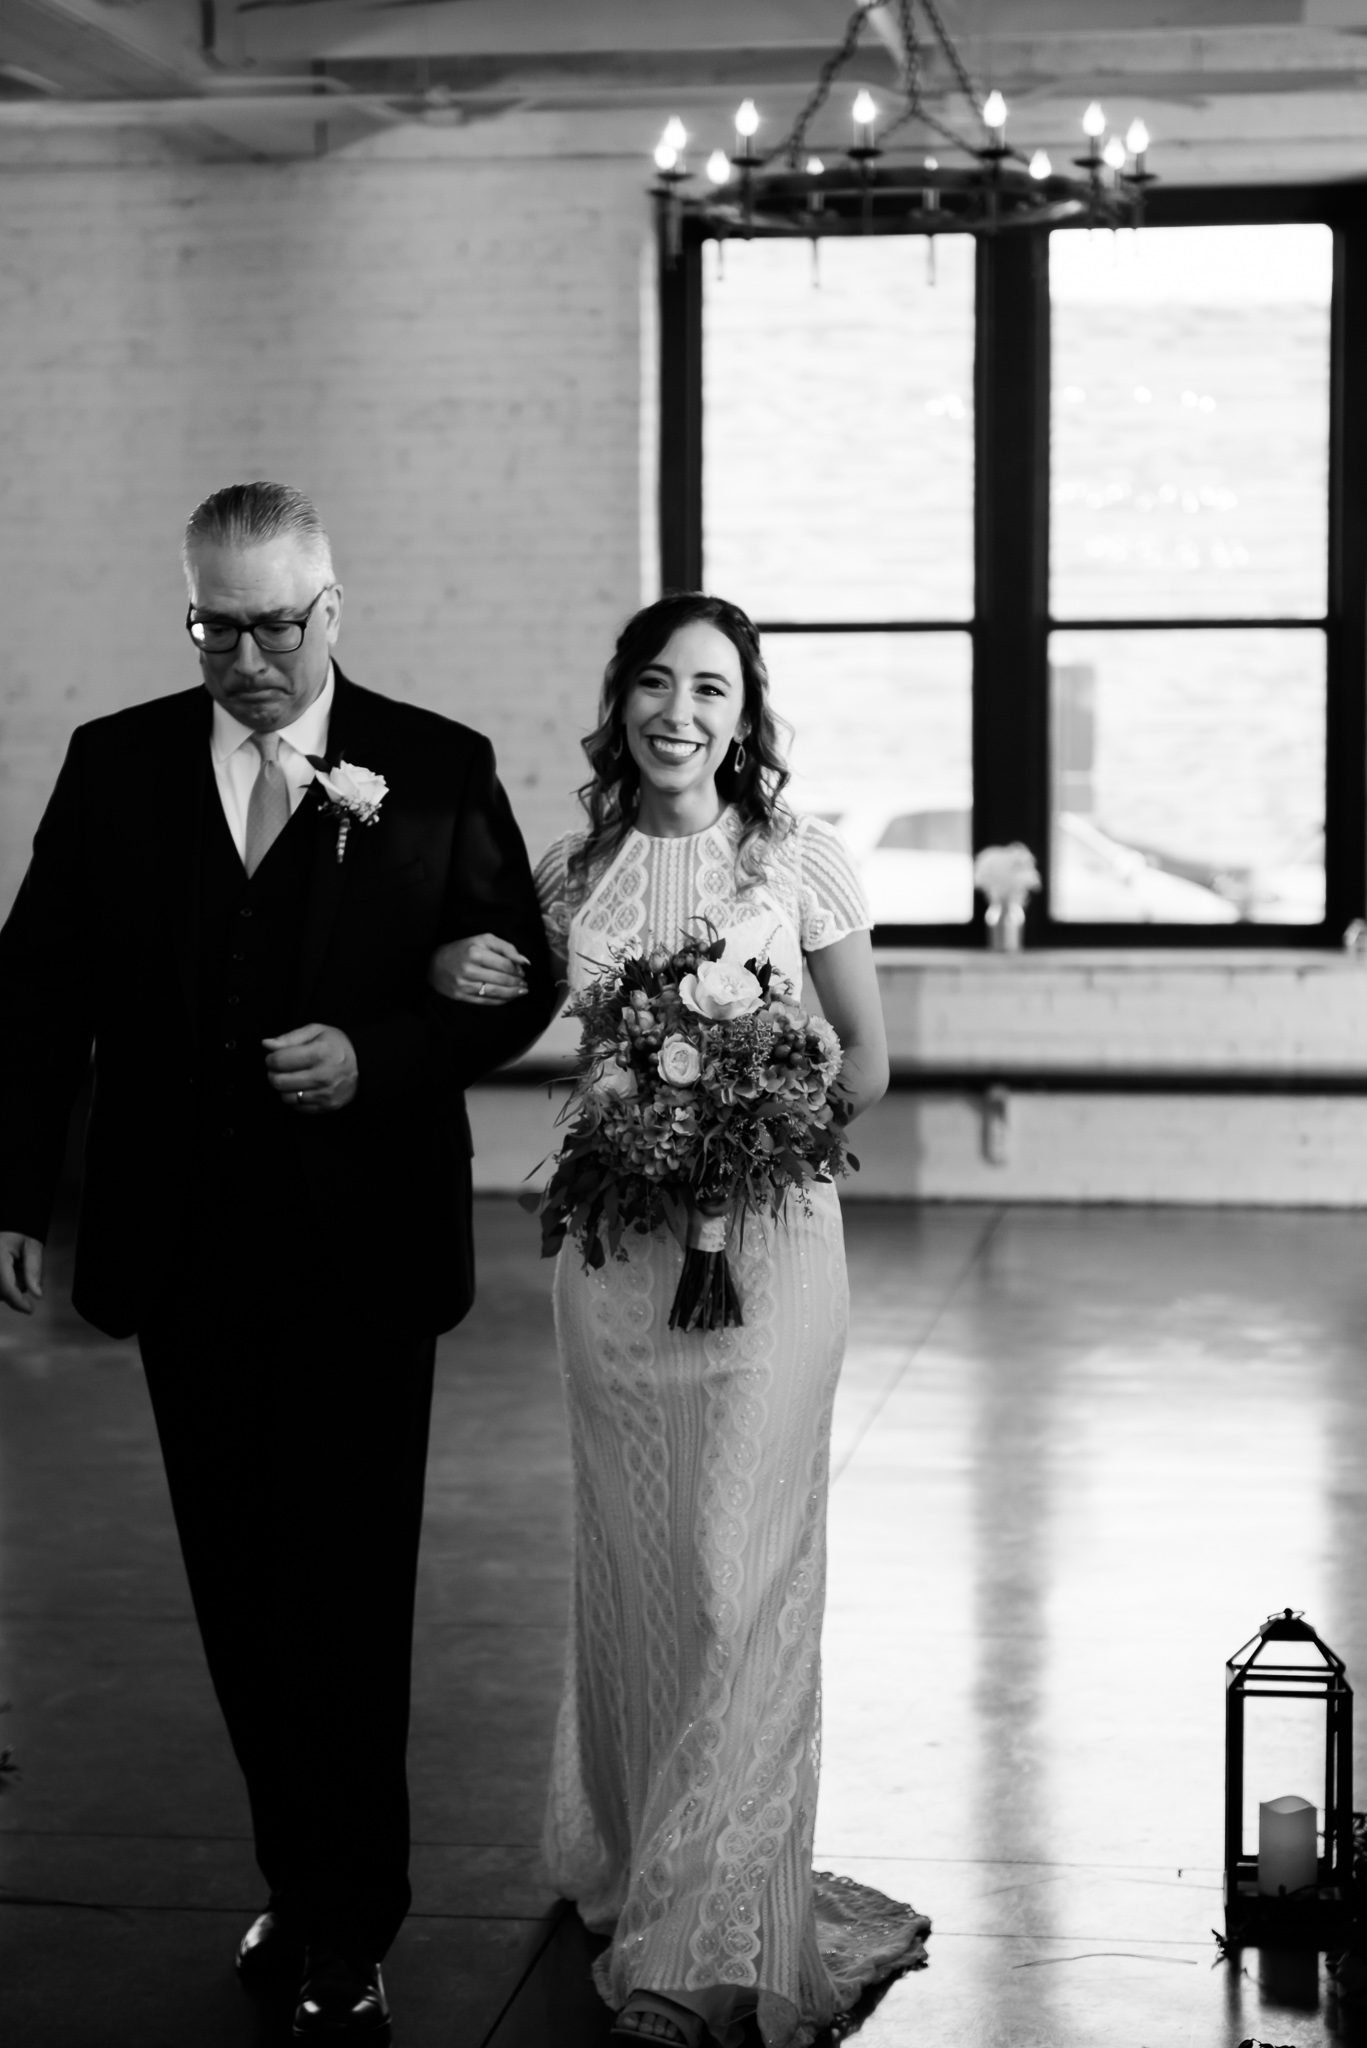 20180915wedding-kyler-michaela-579-2.jpg